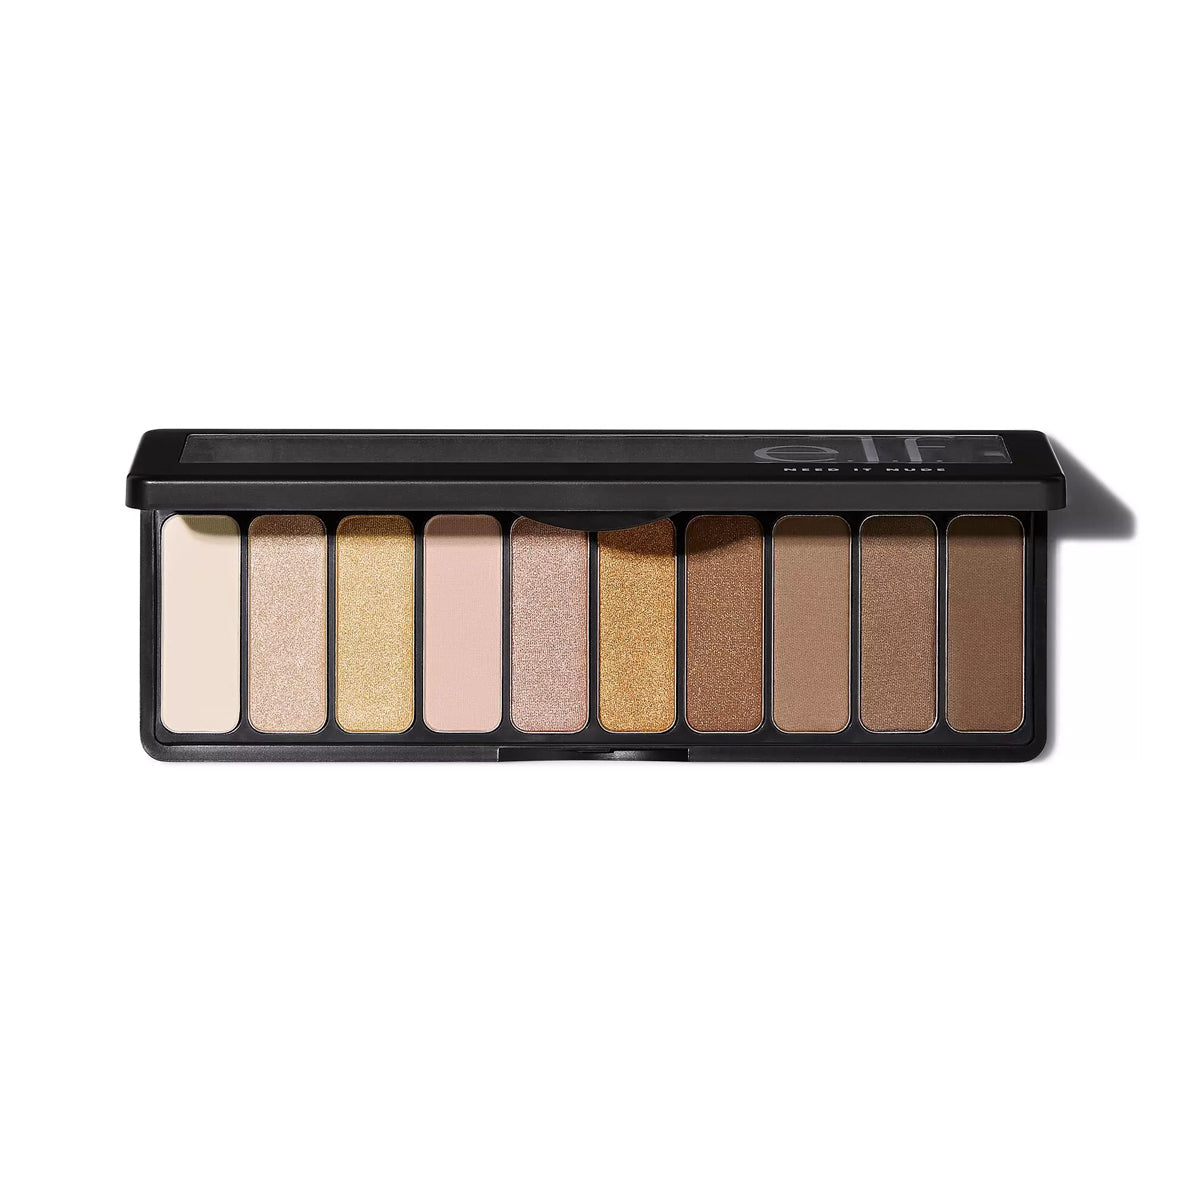 Elf Need it Nude Eye shadow Palette